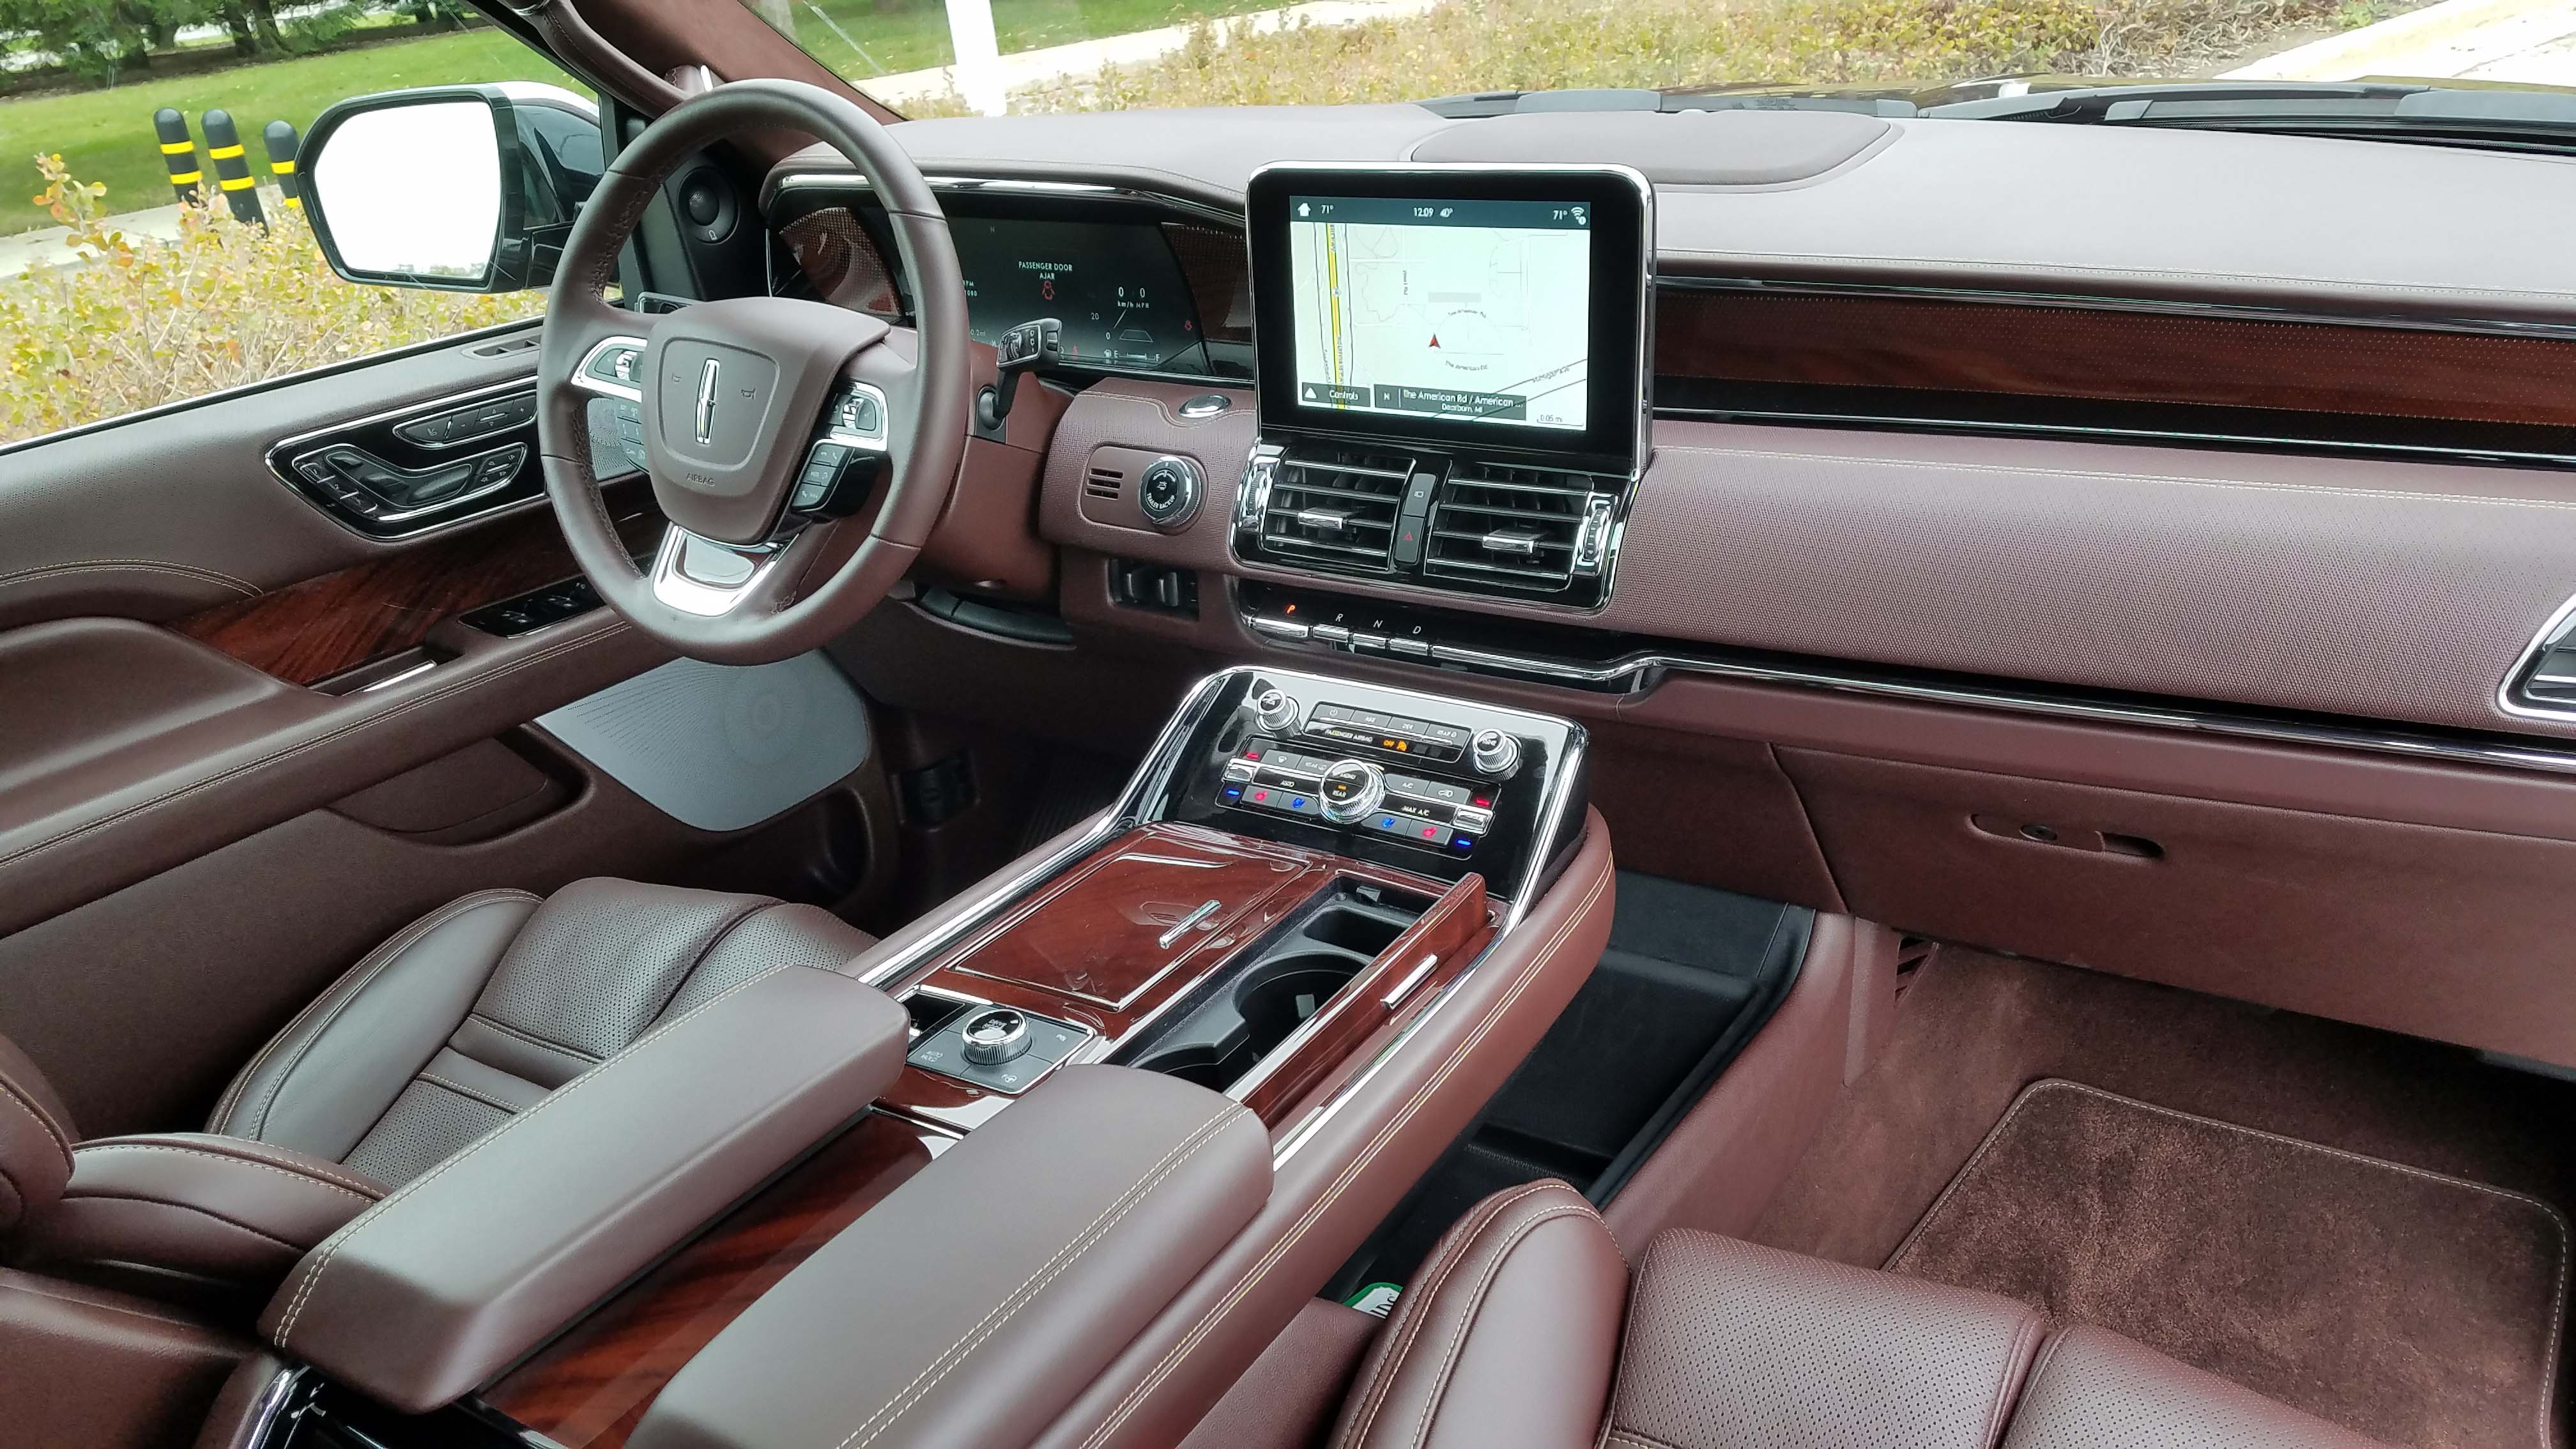 The interior of the Lincoln Navigator is a posh place